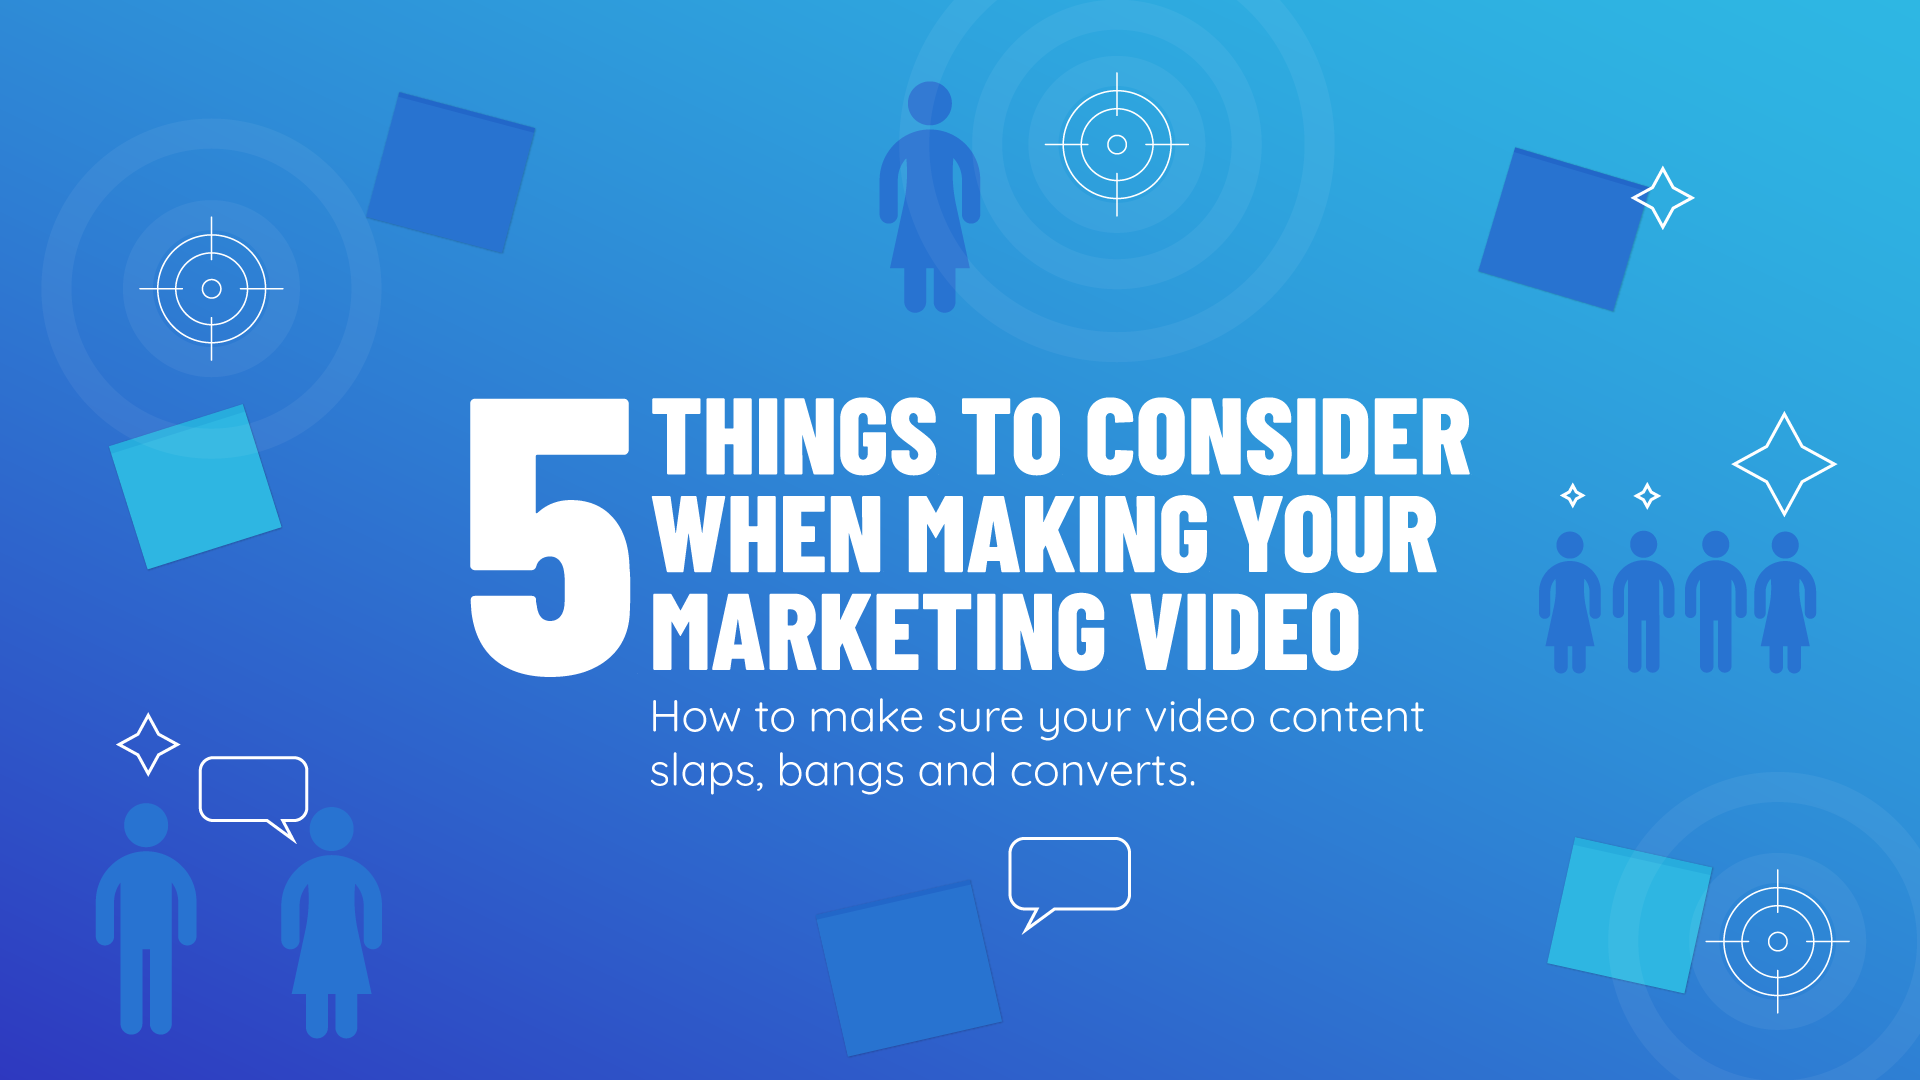 5 things to consider when making your marketing video